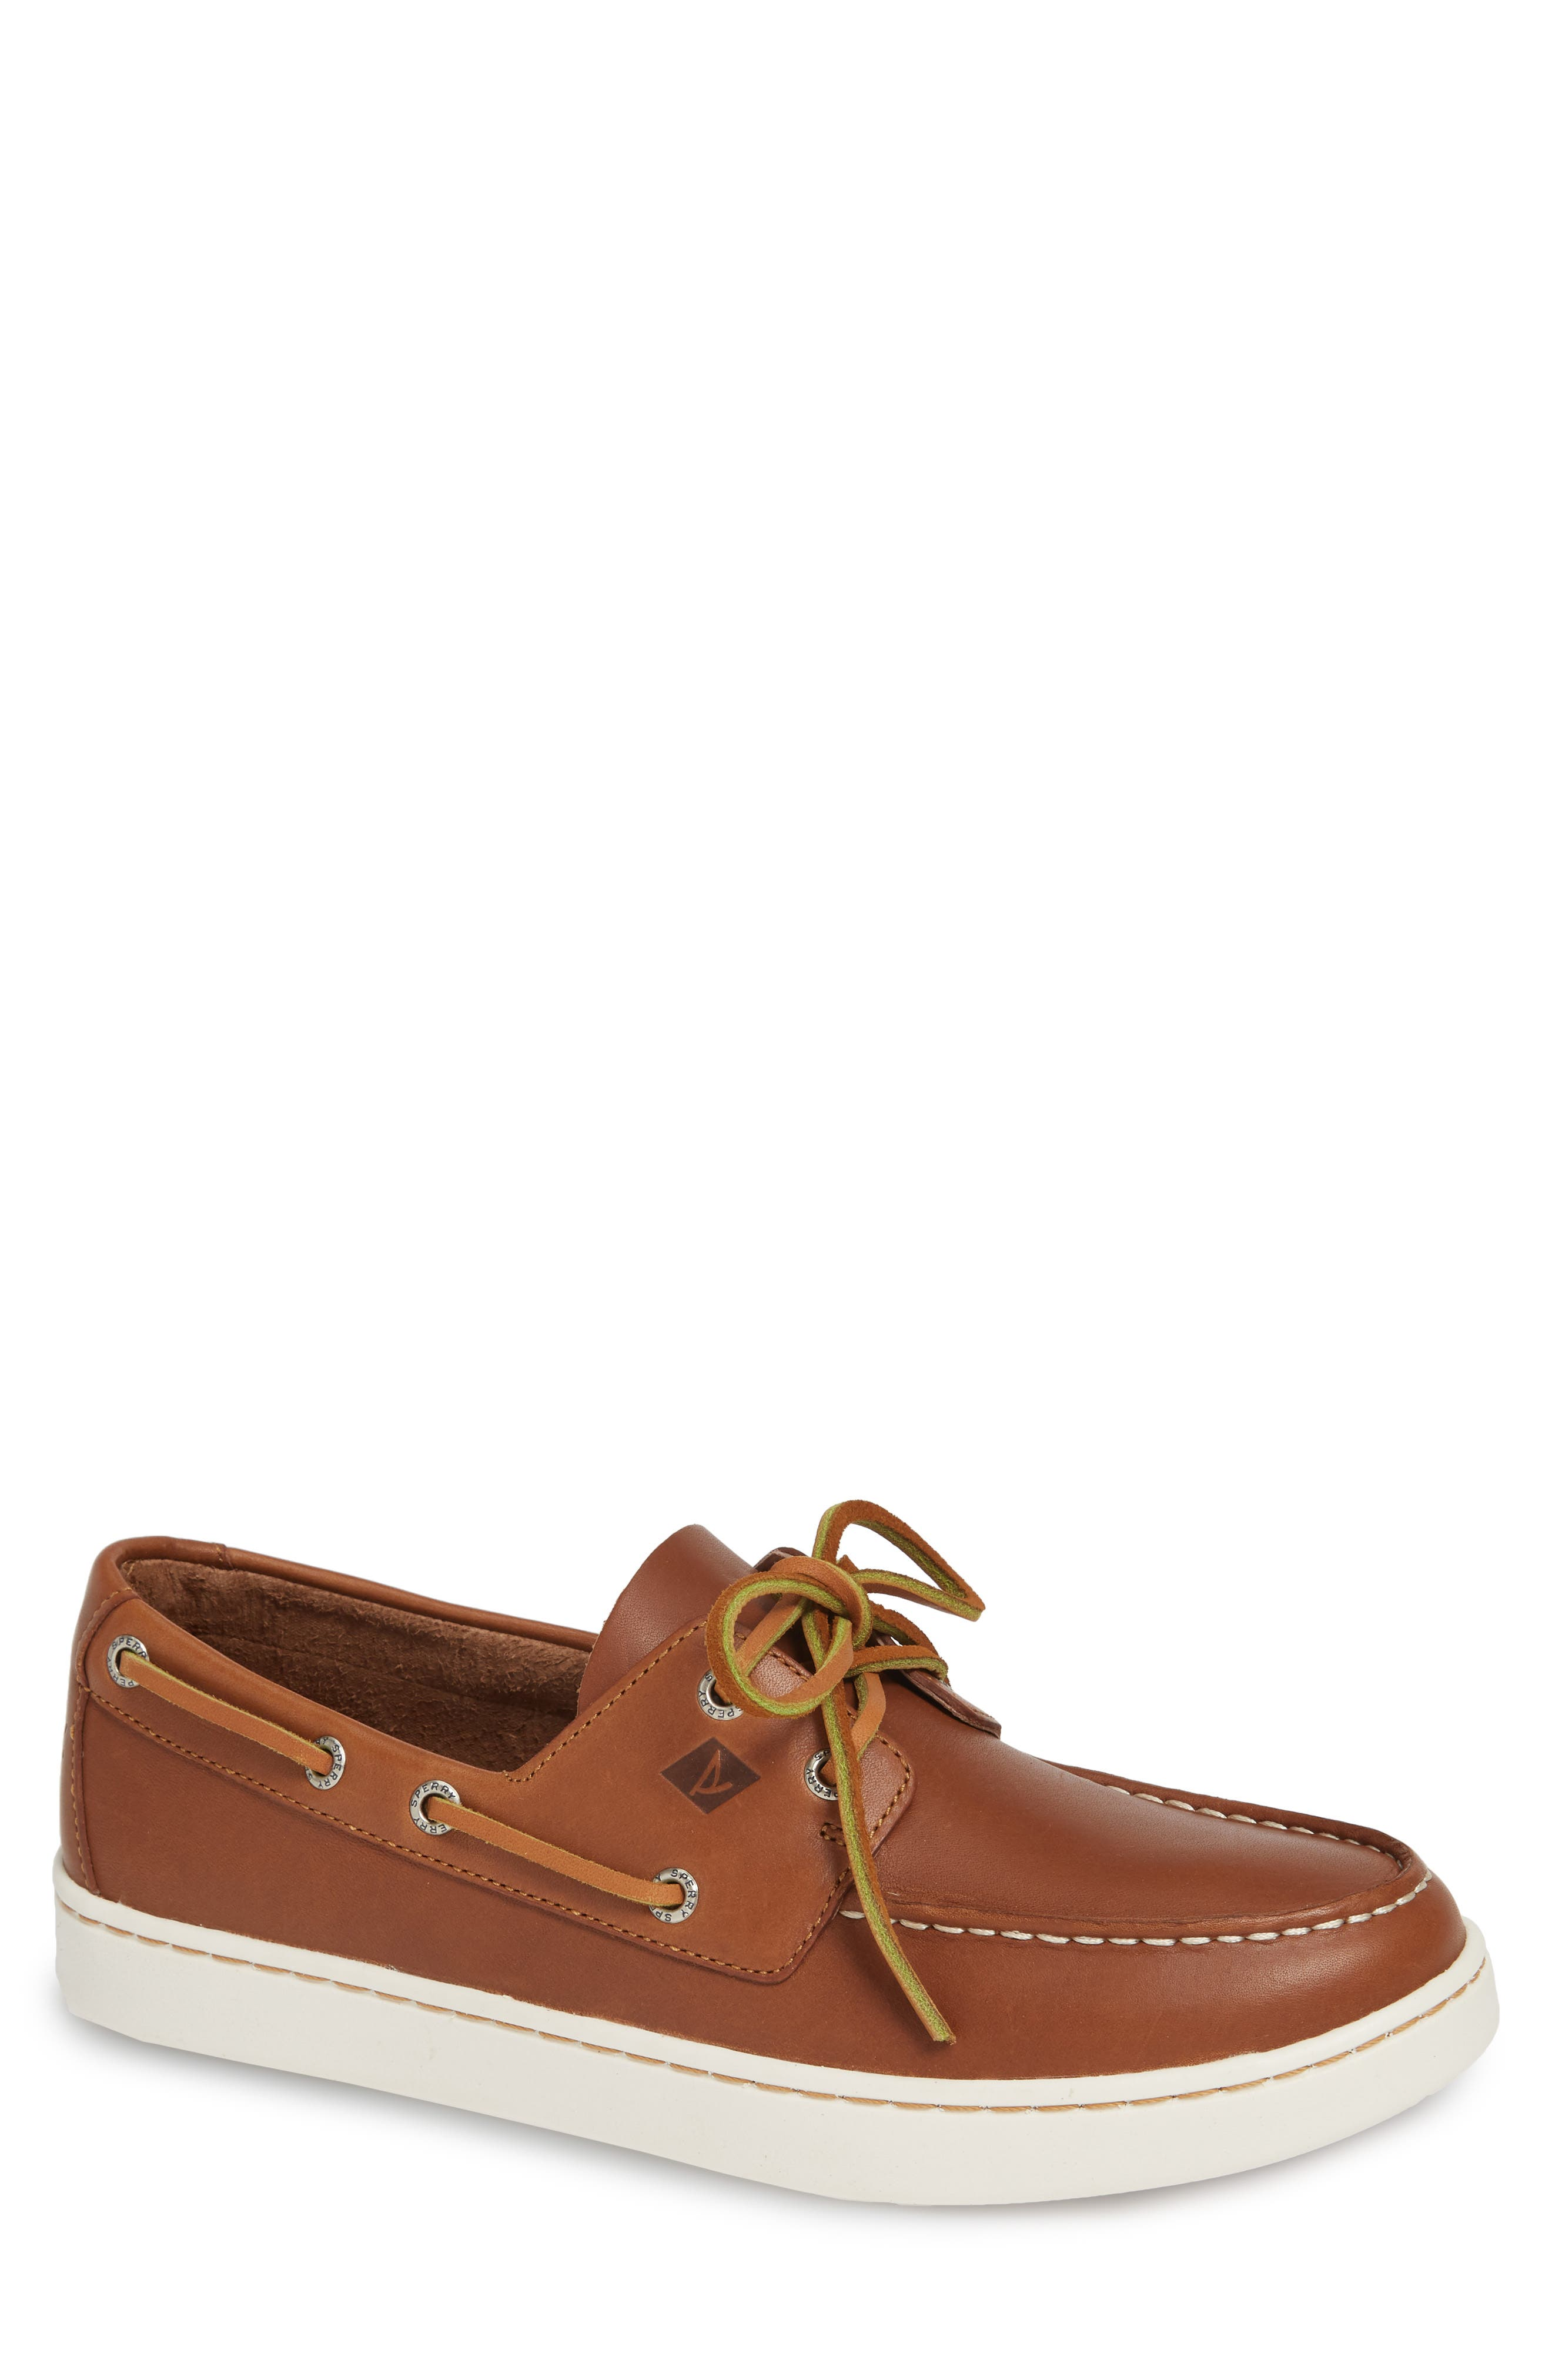 SPERRY, Cup Boat Shoe, Main thumbnail 1, color, TAN